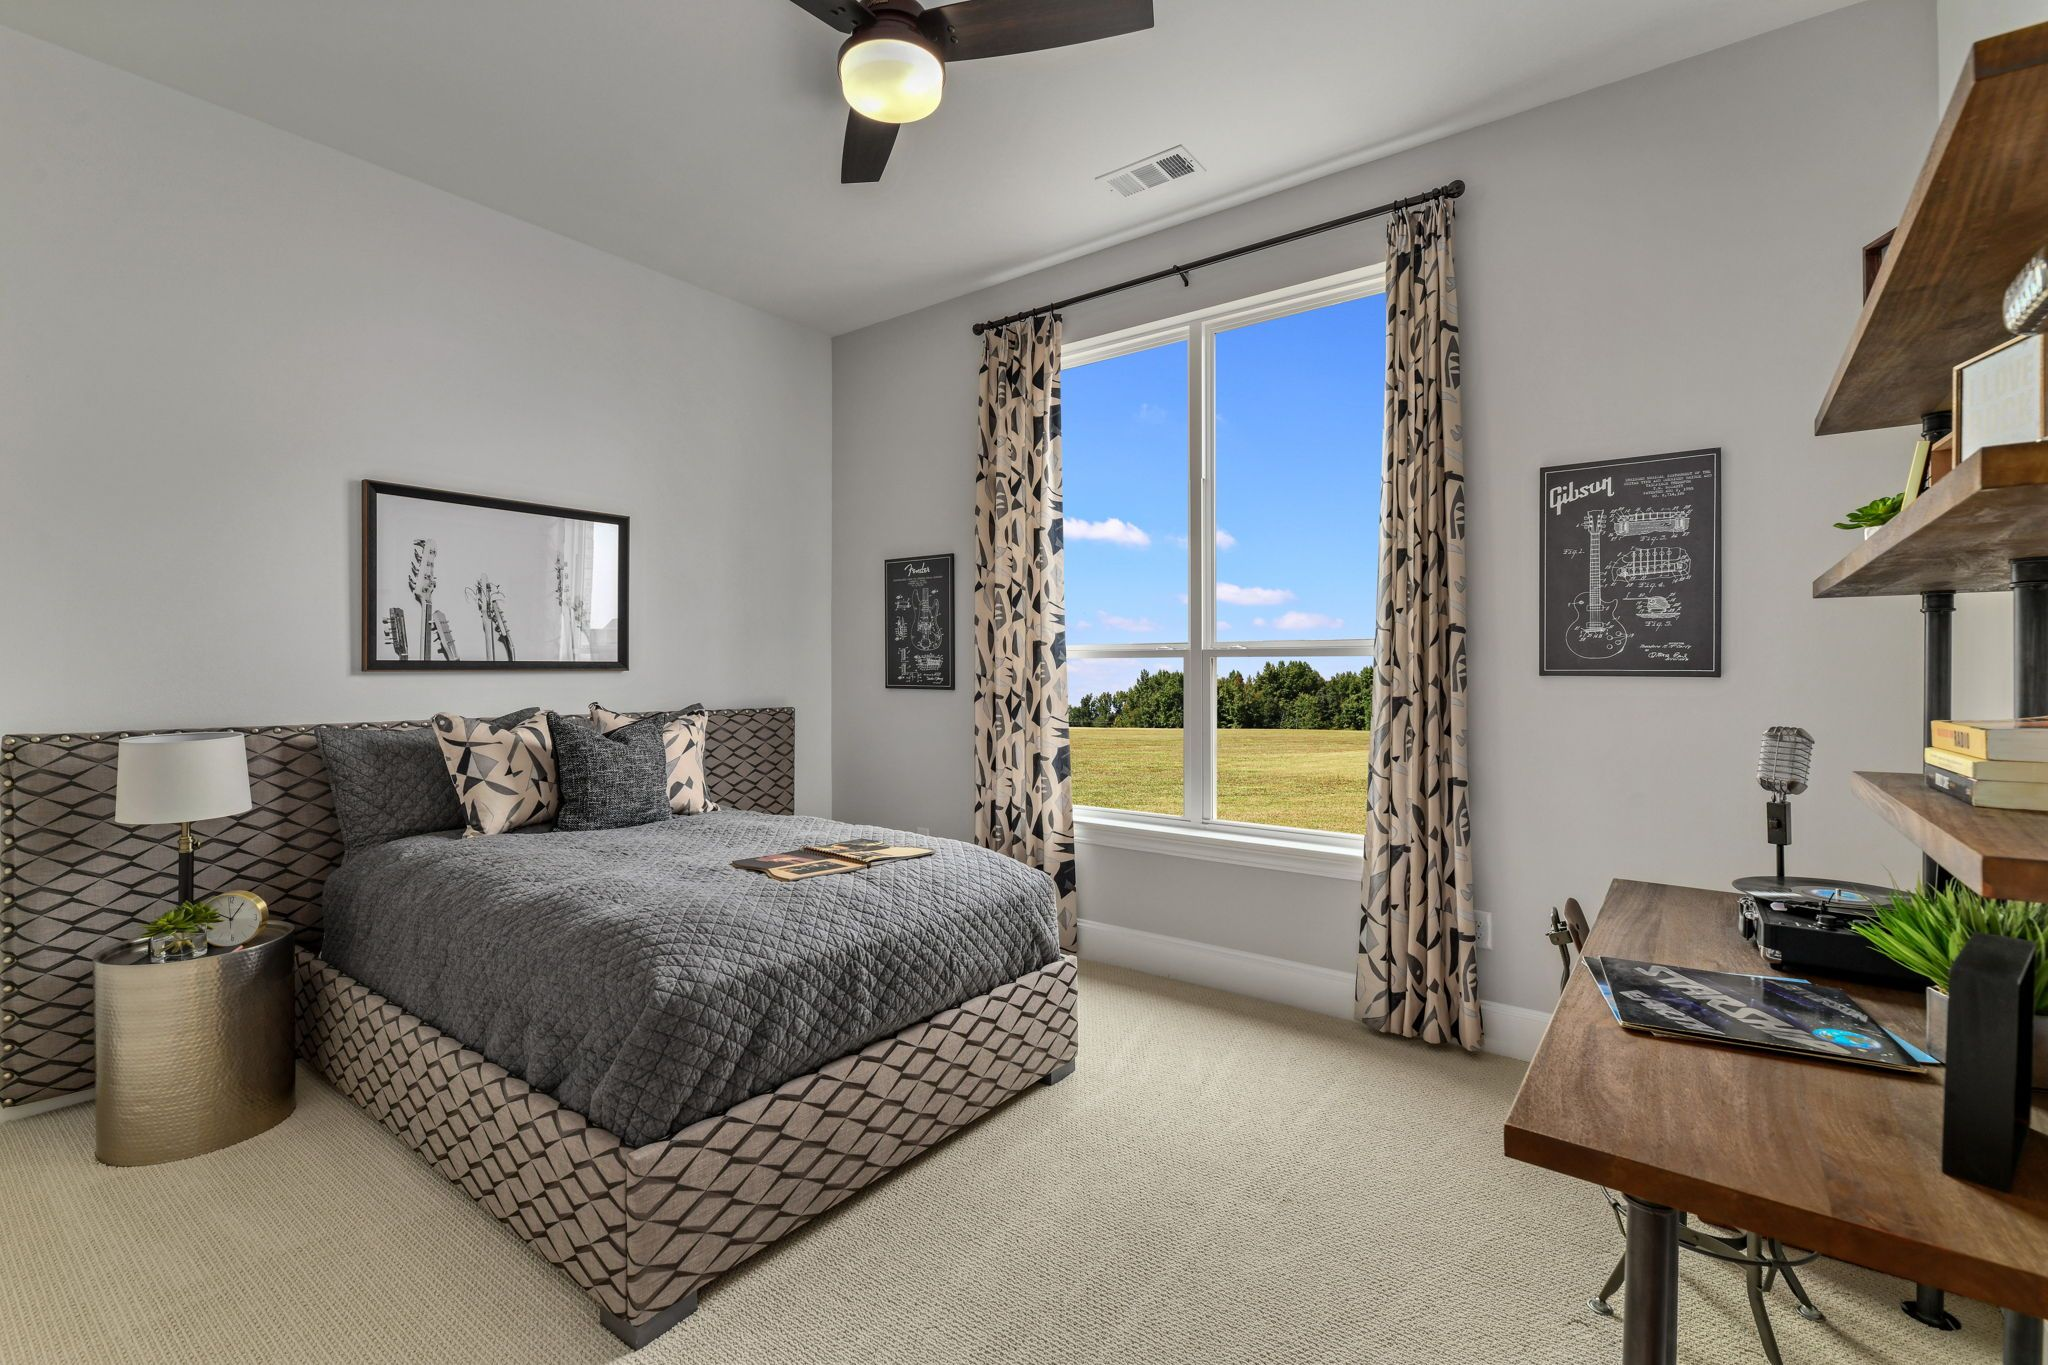 Bedroom featured in the B815 By BelclaireHomes in Dallas, TX